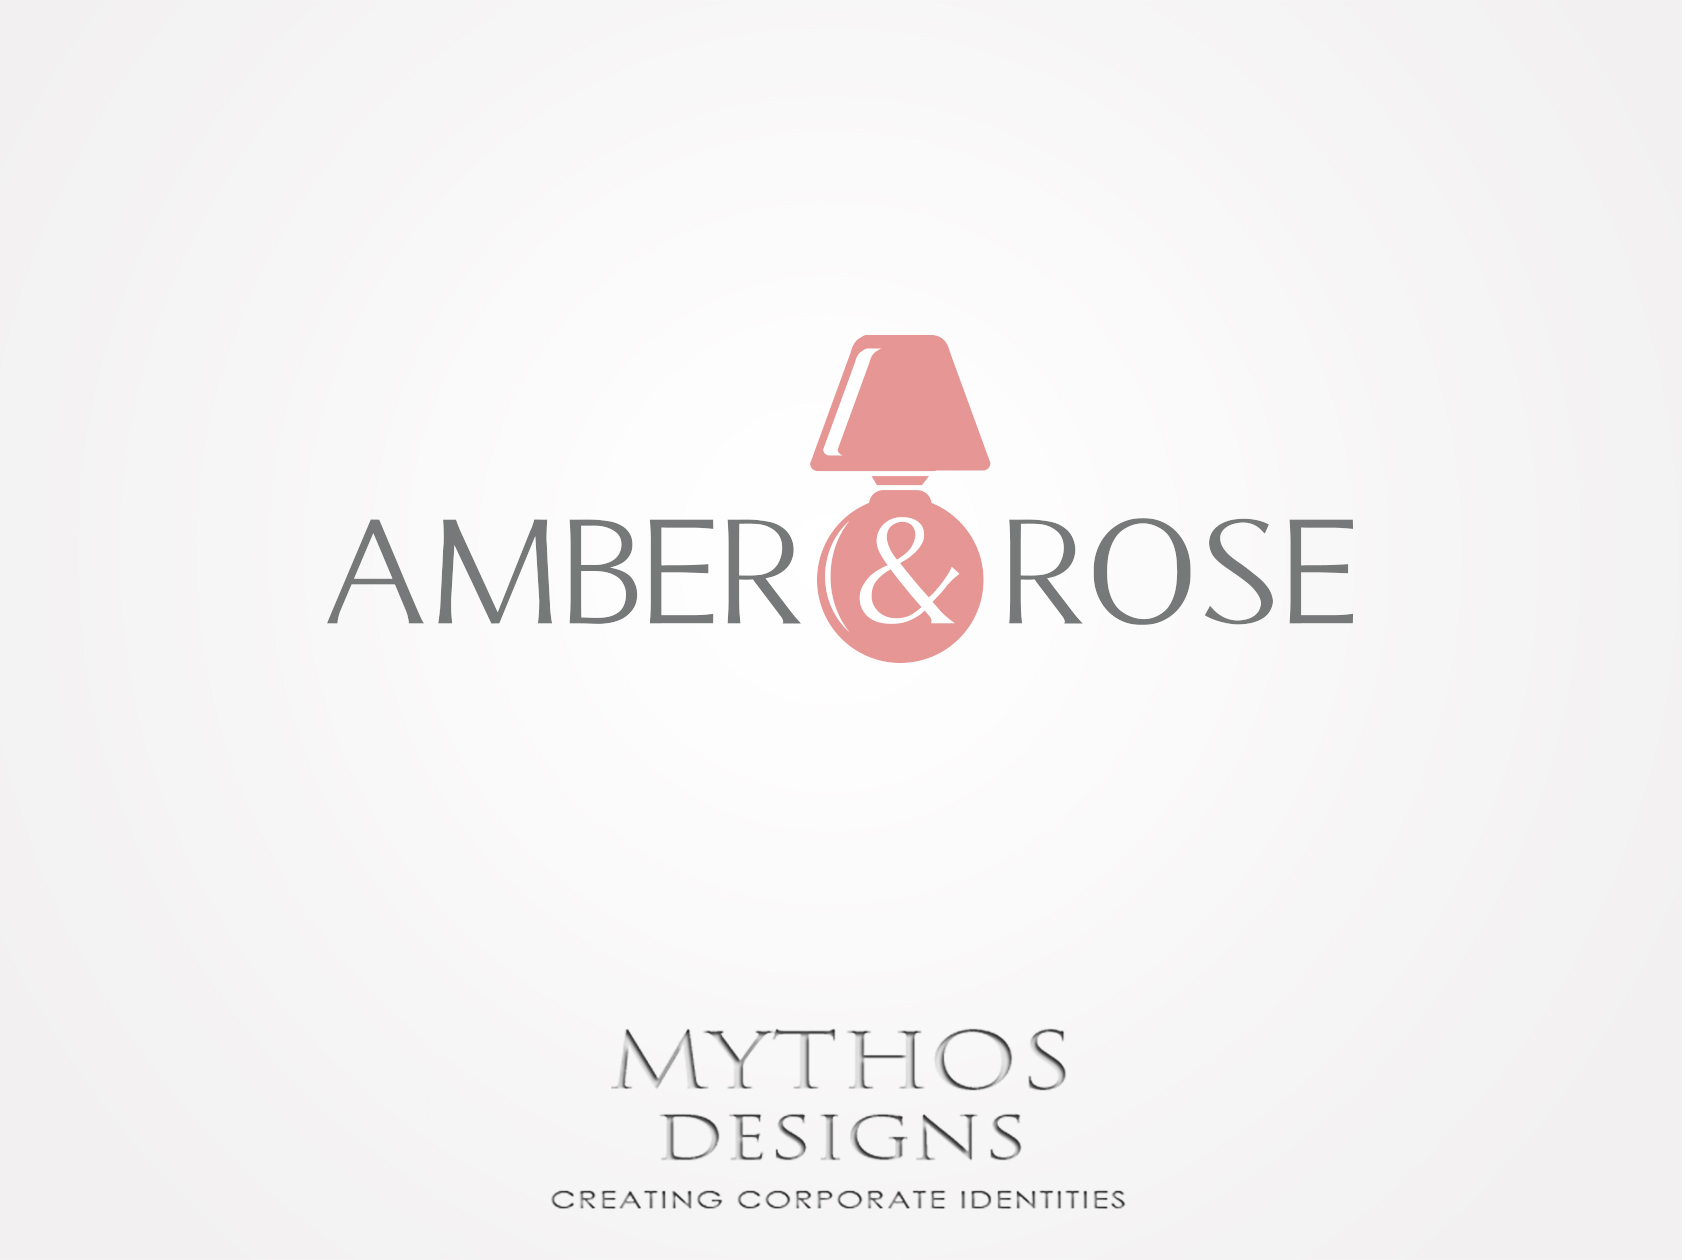 Logo Design by Mythos Designs - Entry No. 80 in the Logo Design Contest Creative Logo Design for Amber & Rose.